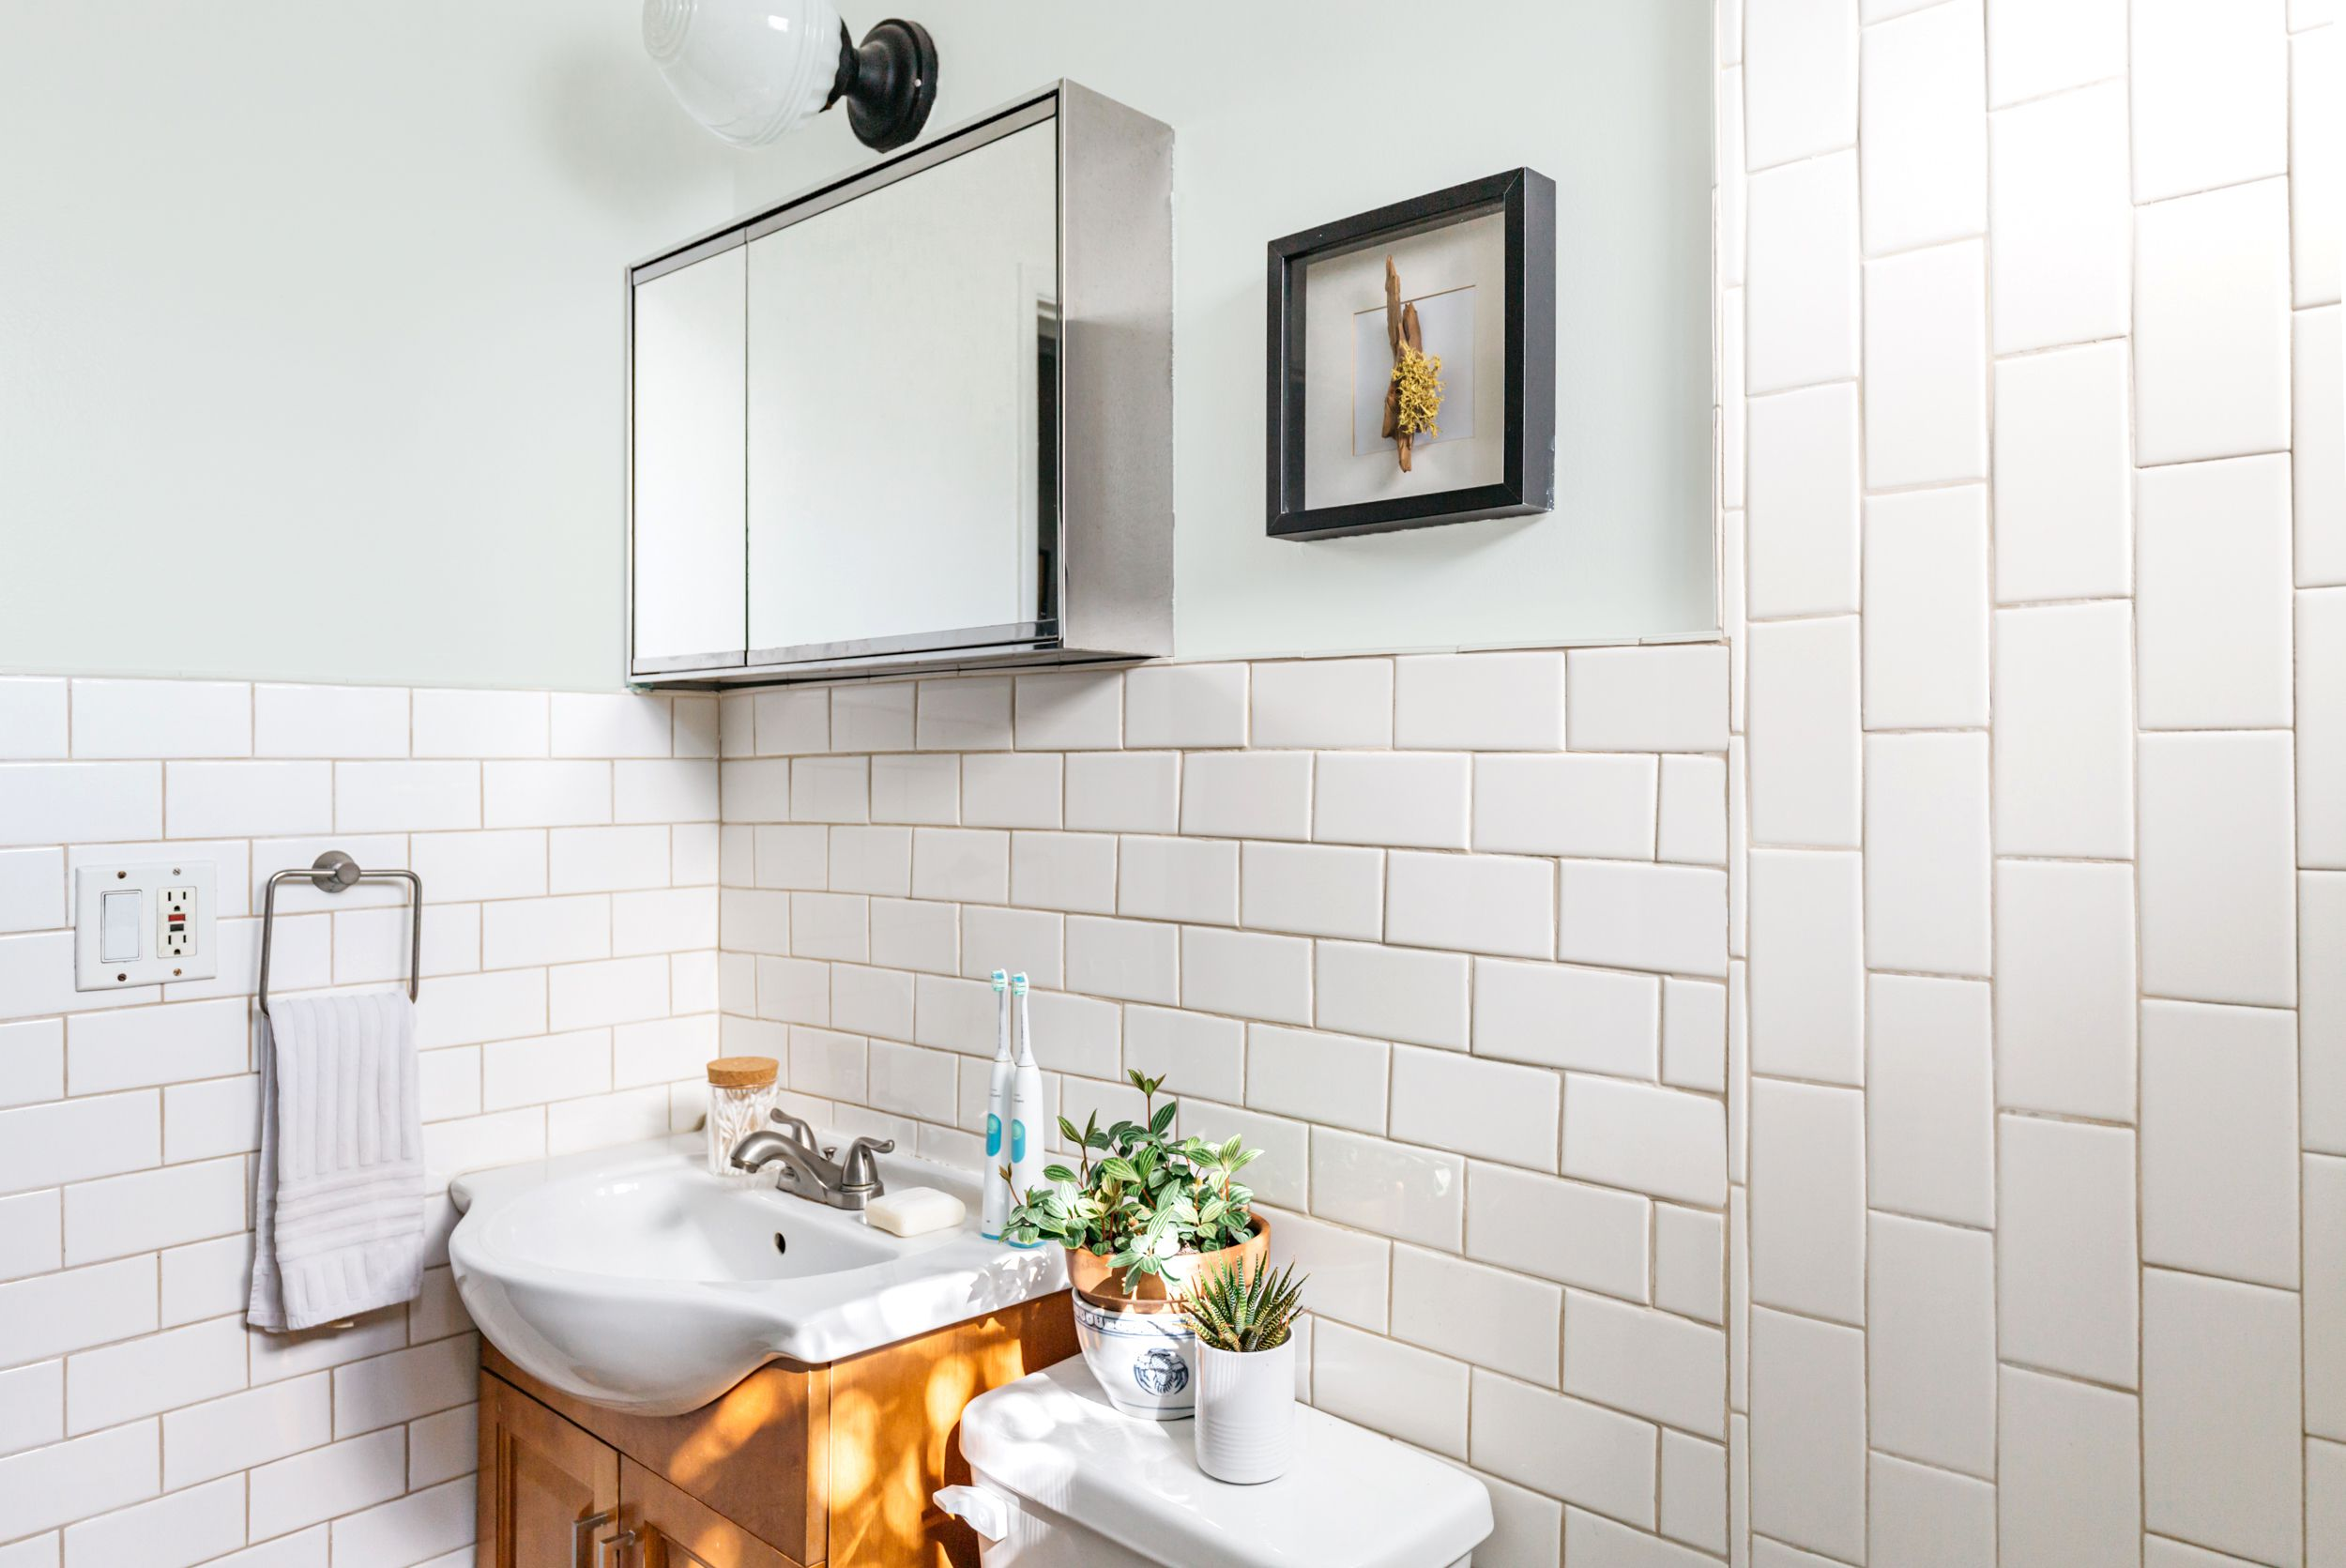 Paint Color Ideas For A Small Bathroom,Farmhouse French Country Decorating Ideas